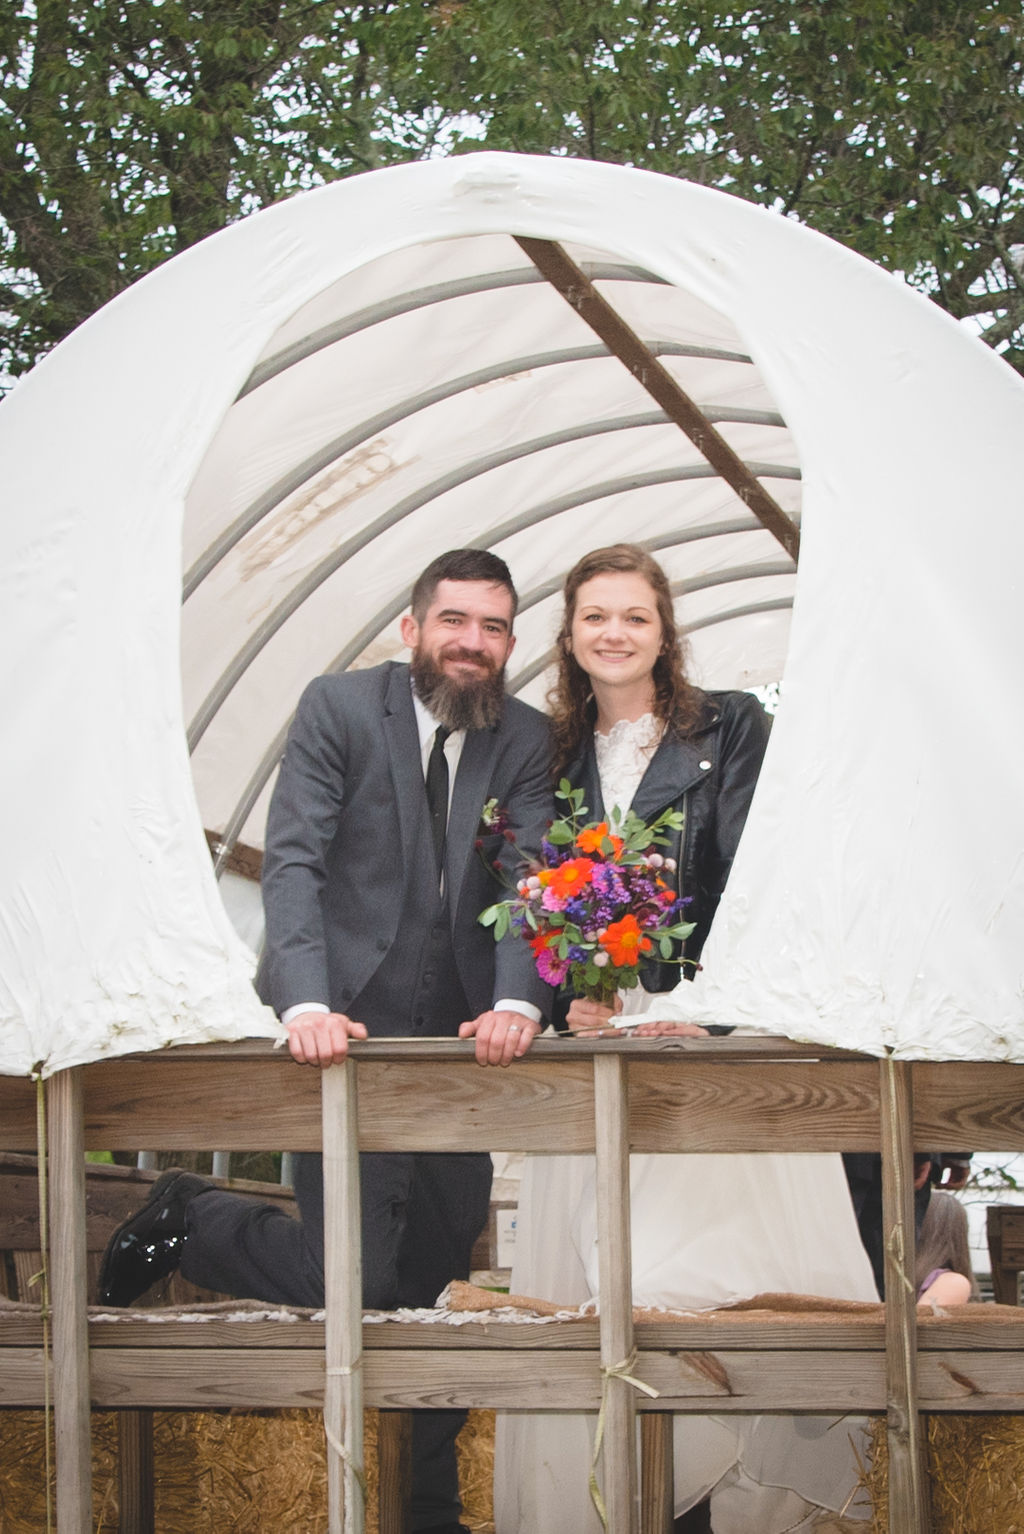 Bride & Groom on Covered Wagon